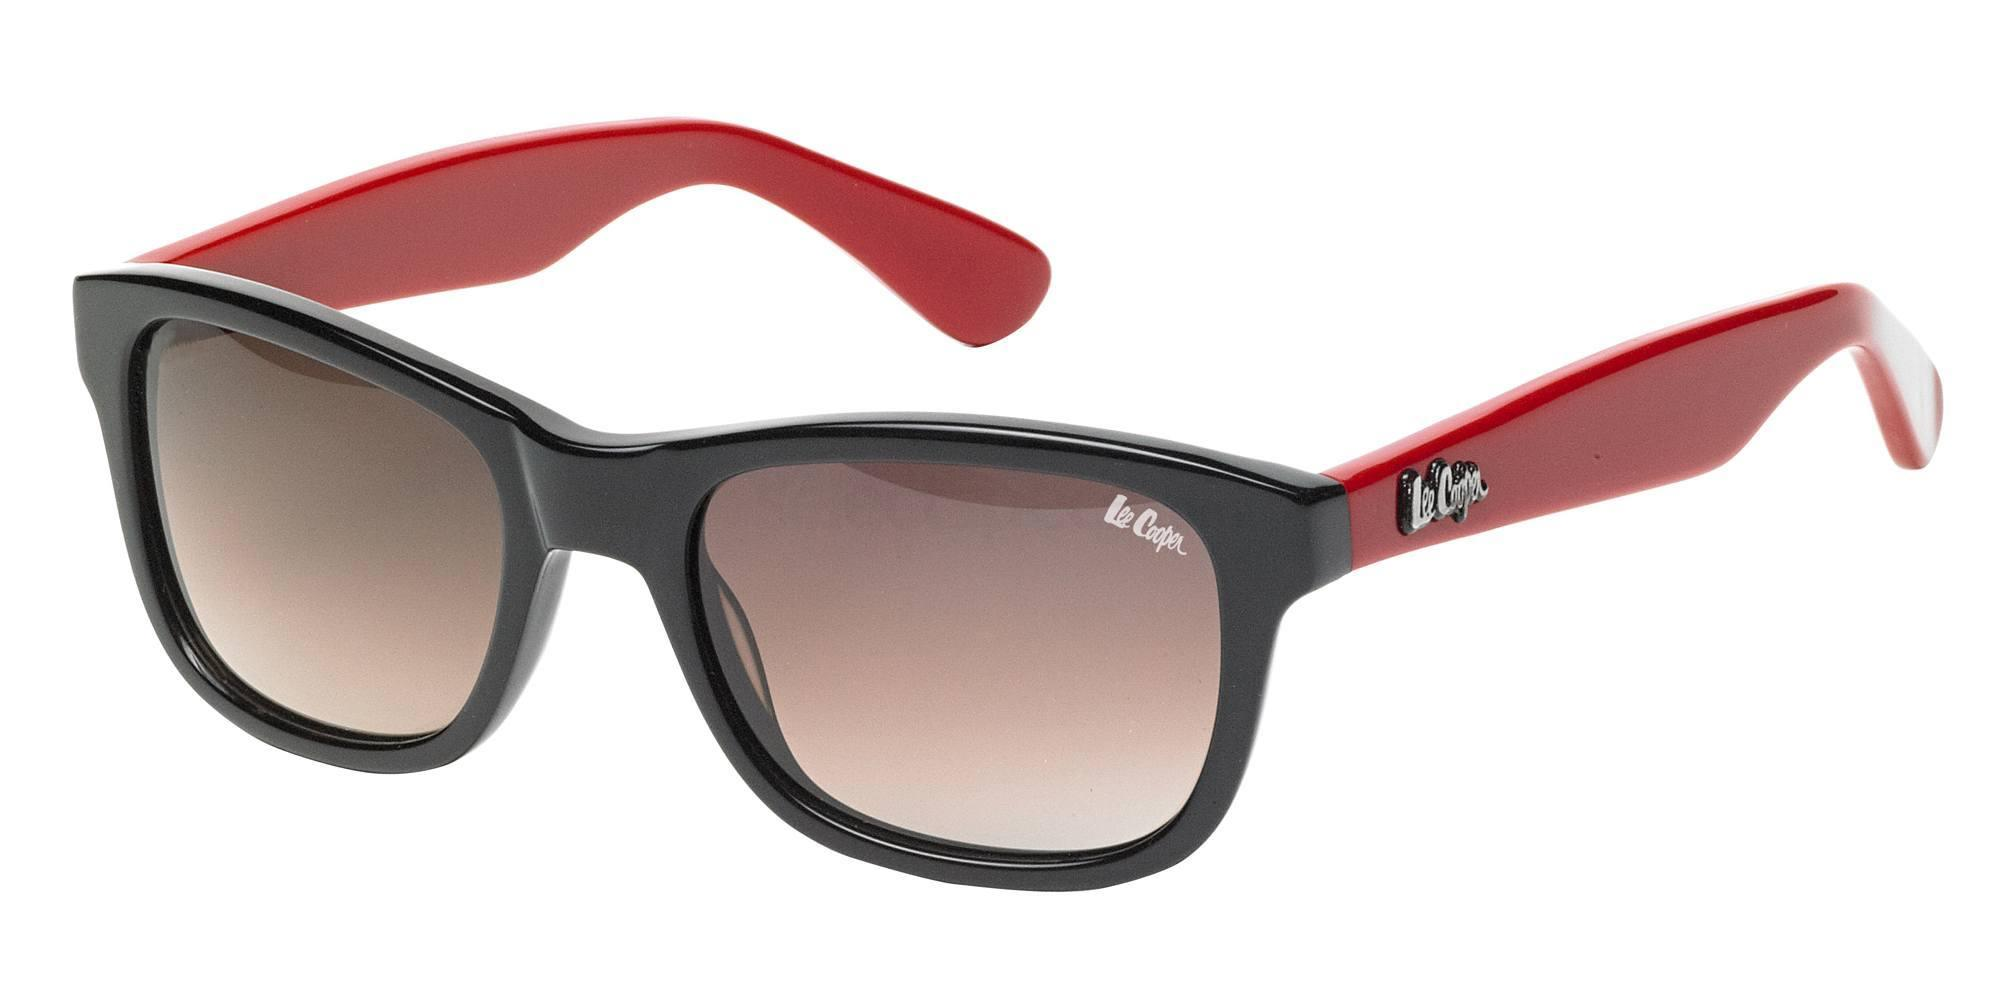 C1 SGLCK101 Sunglasses, Lee Cooper KIDS